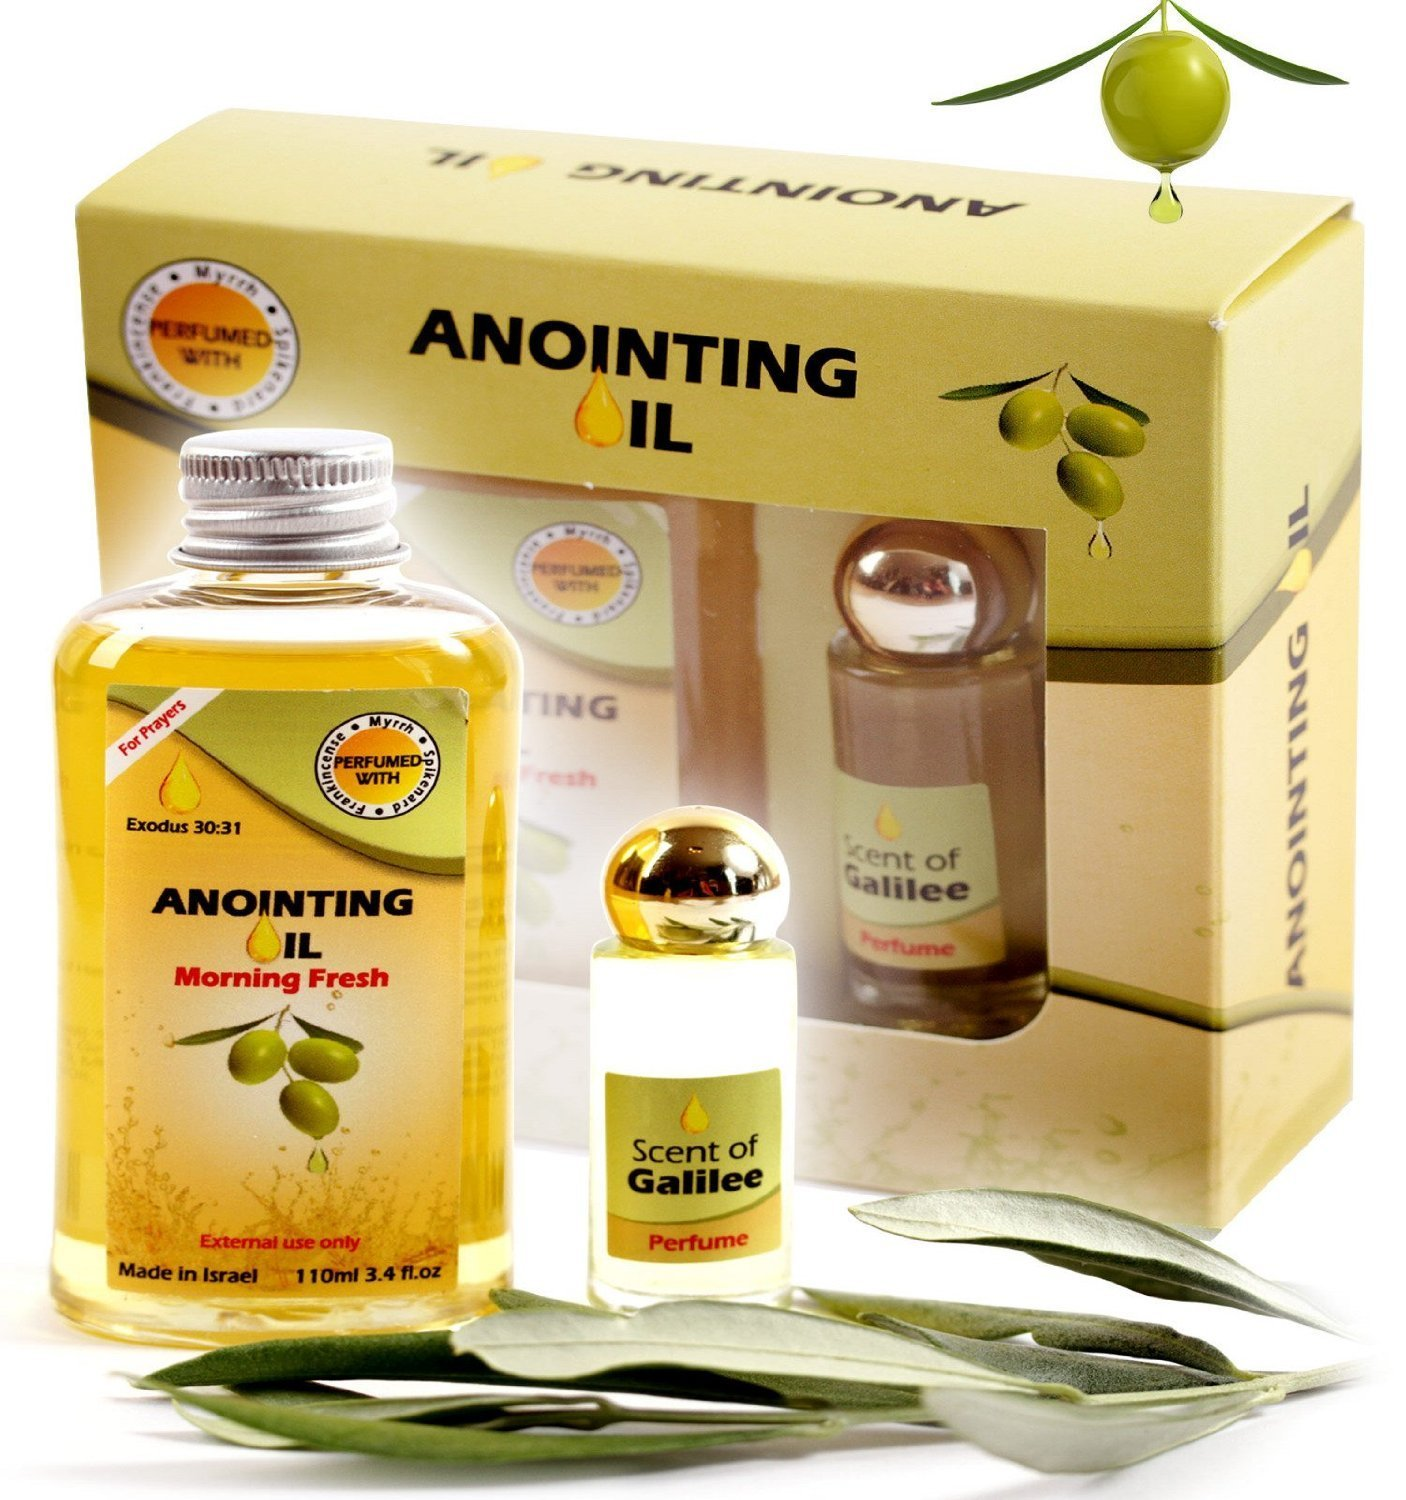 Aya Natural Anointing Oil From Israel - Vegan Holy Oil Blend of  Frankincense and Myrrh Oil & Spikenard